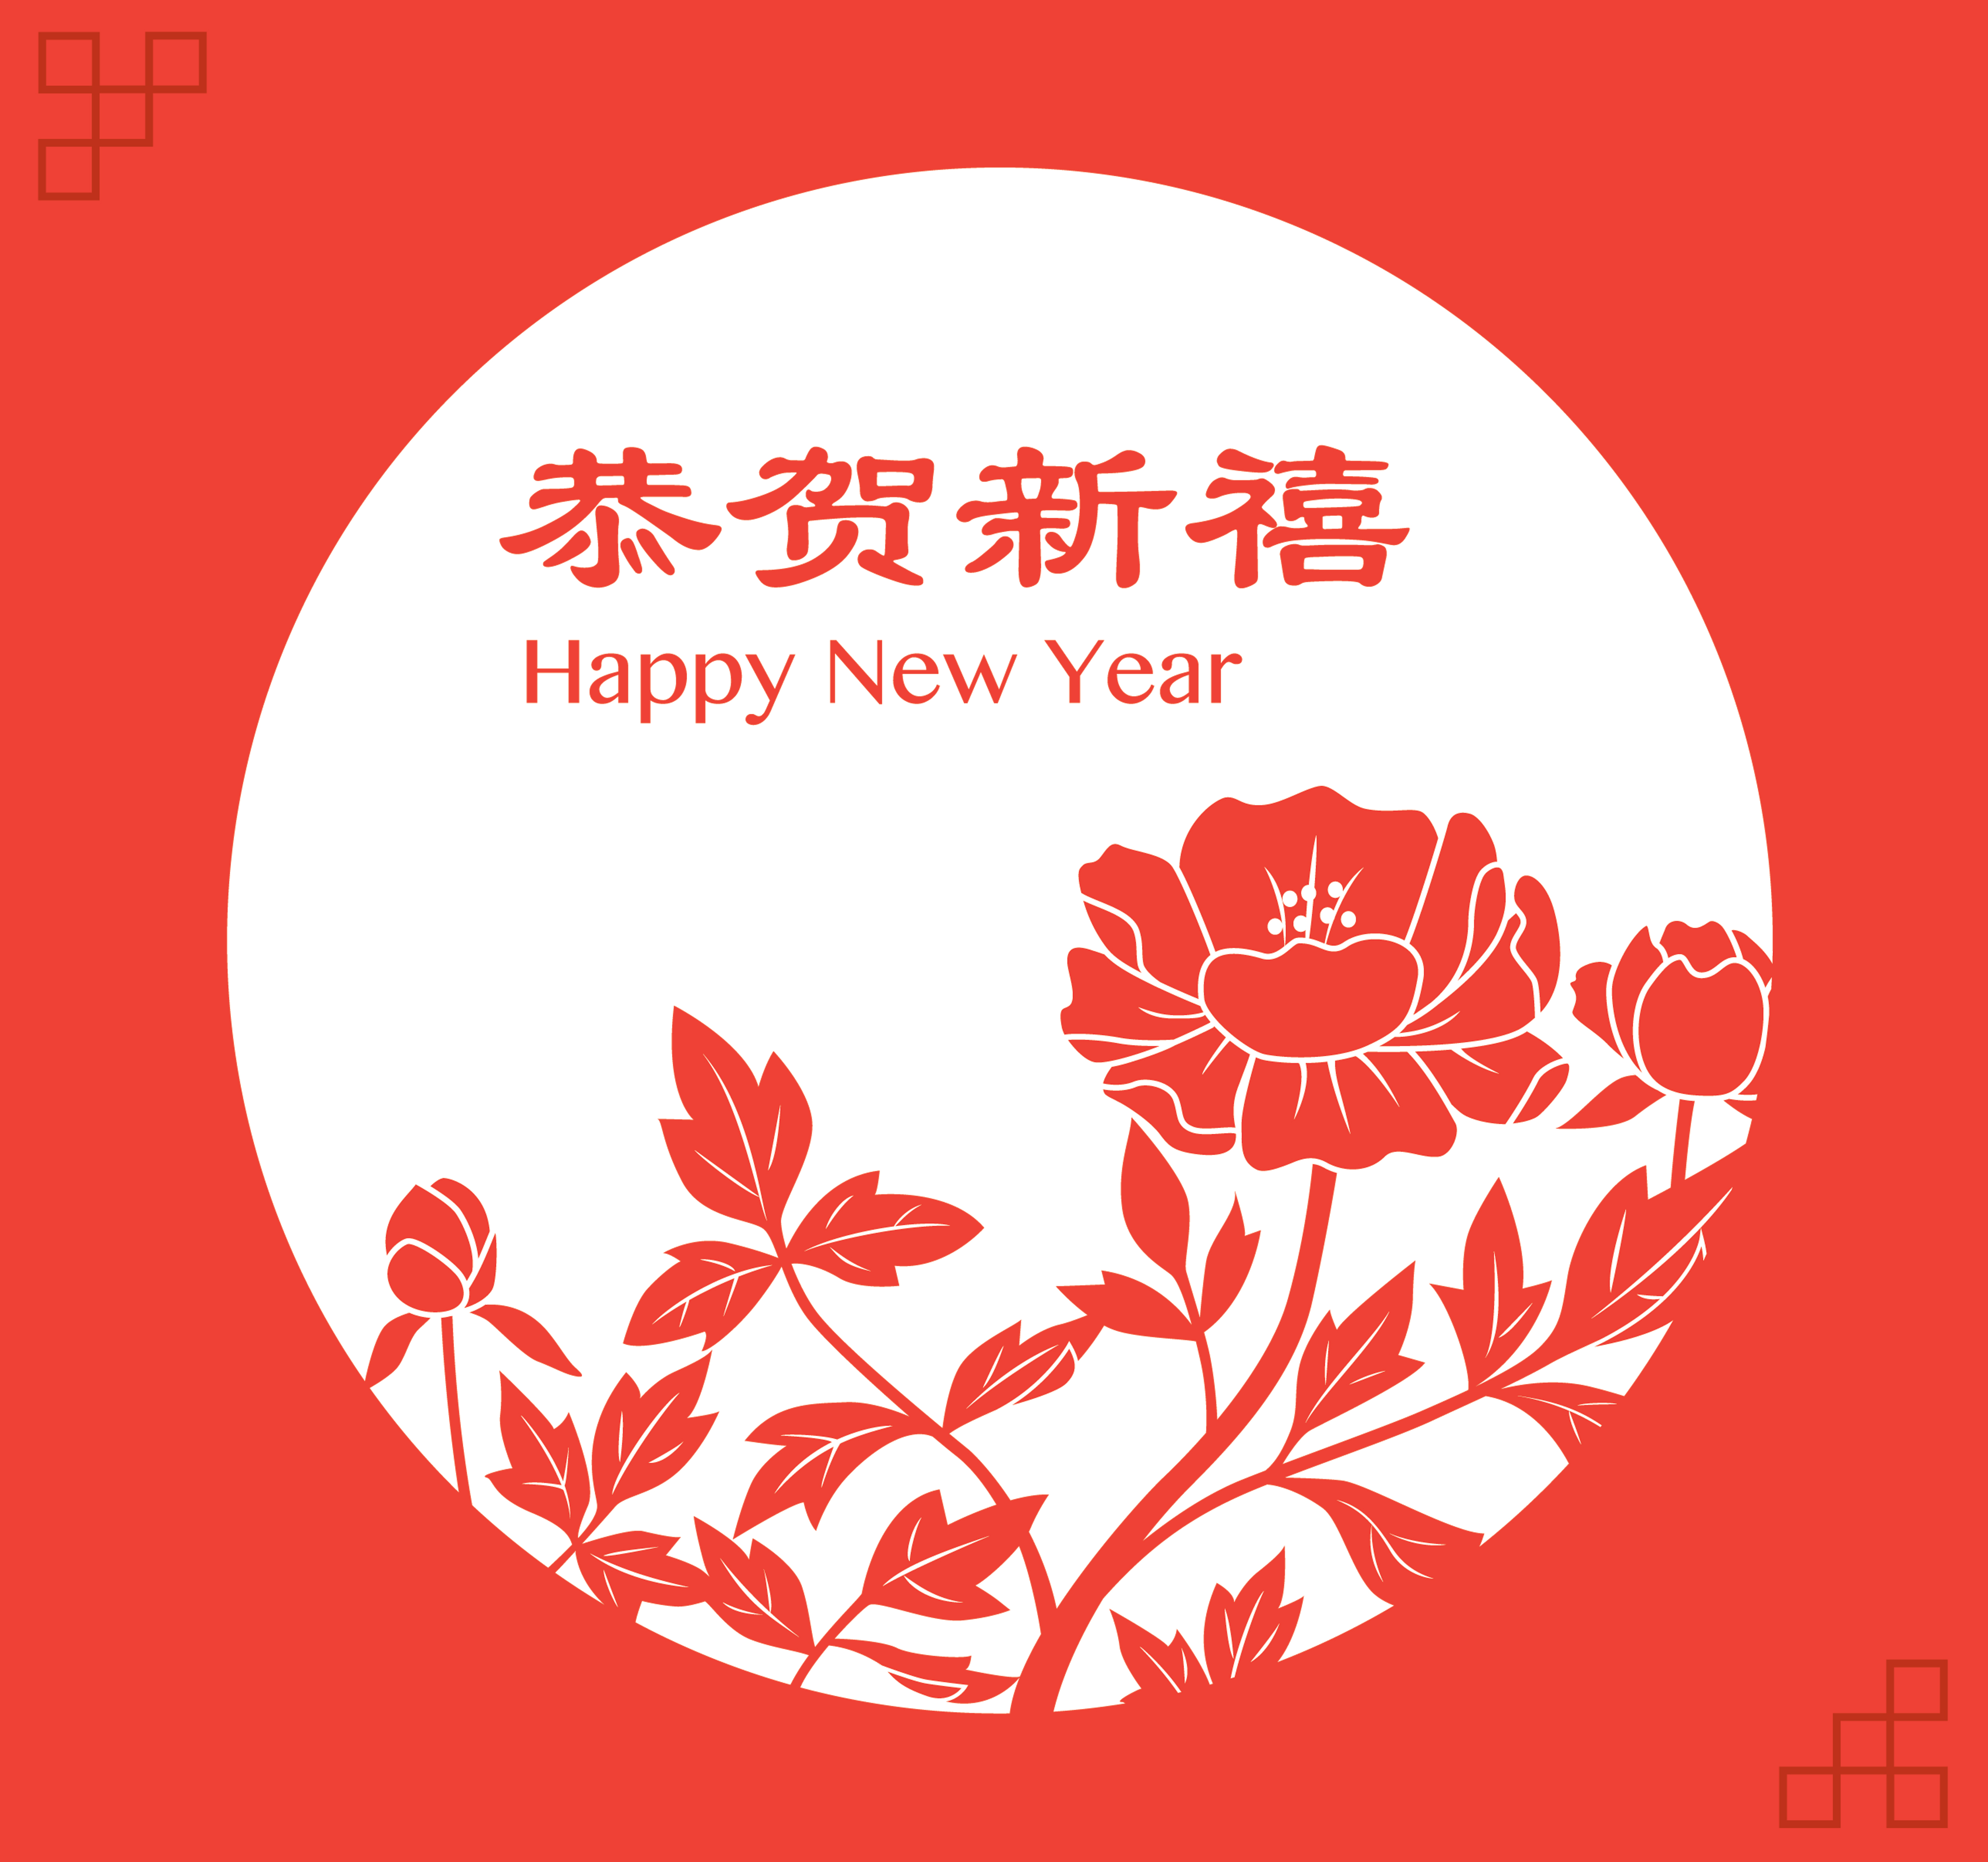 cny_card - Chinese New Year Facts